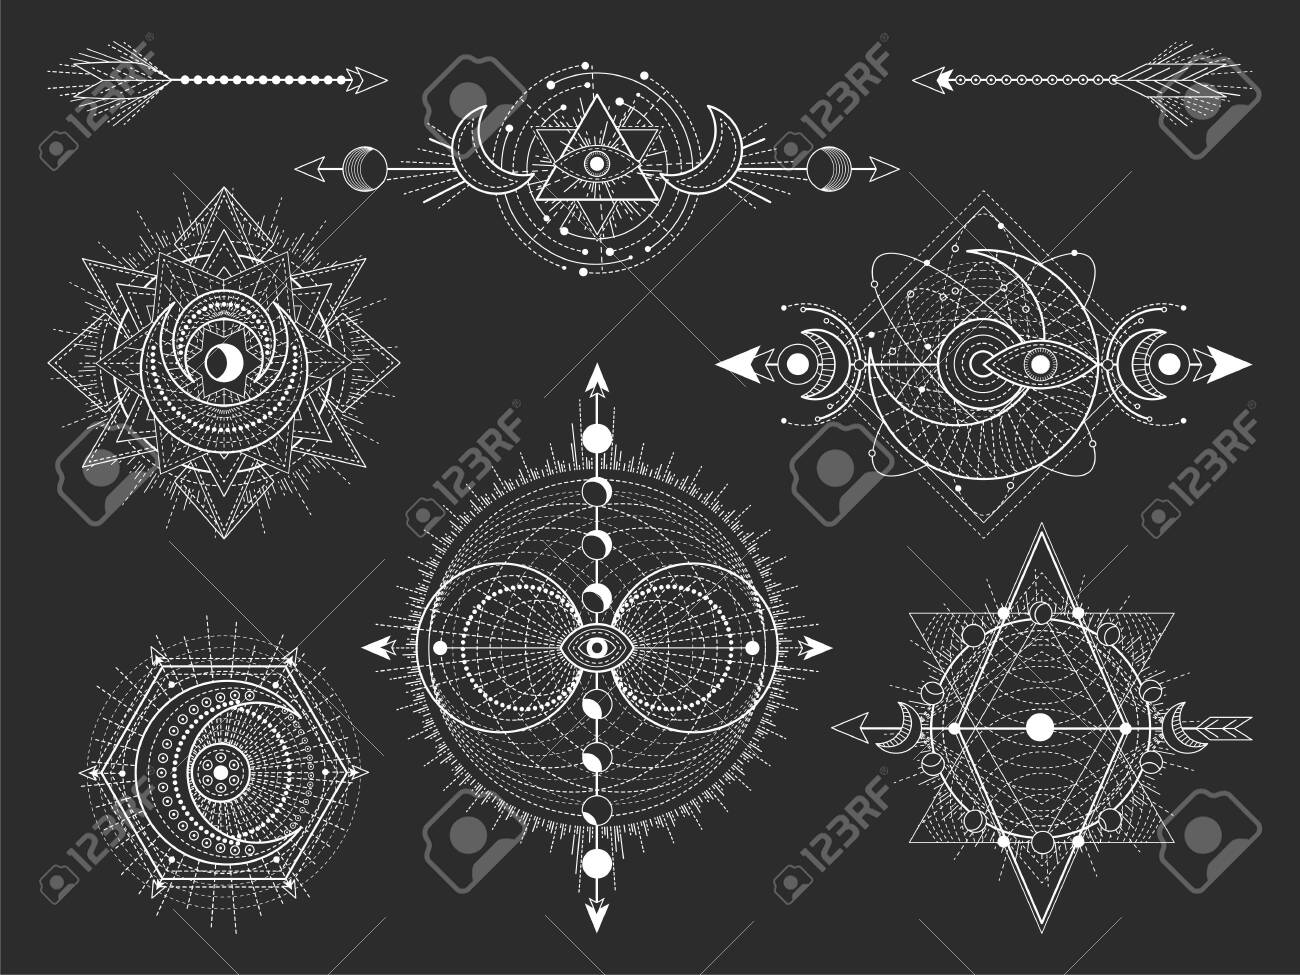 Vector set of Sacred geometric symbols and figures on black background. Abstract mystic signs collection. White linear shapes. For you design: tattoo, posters, t-shirts, textiles or magic craft. - 131282738